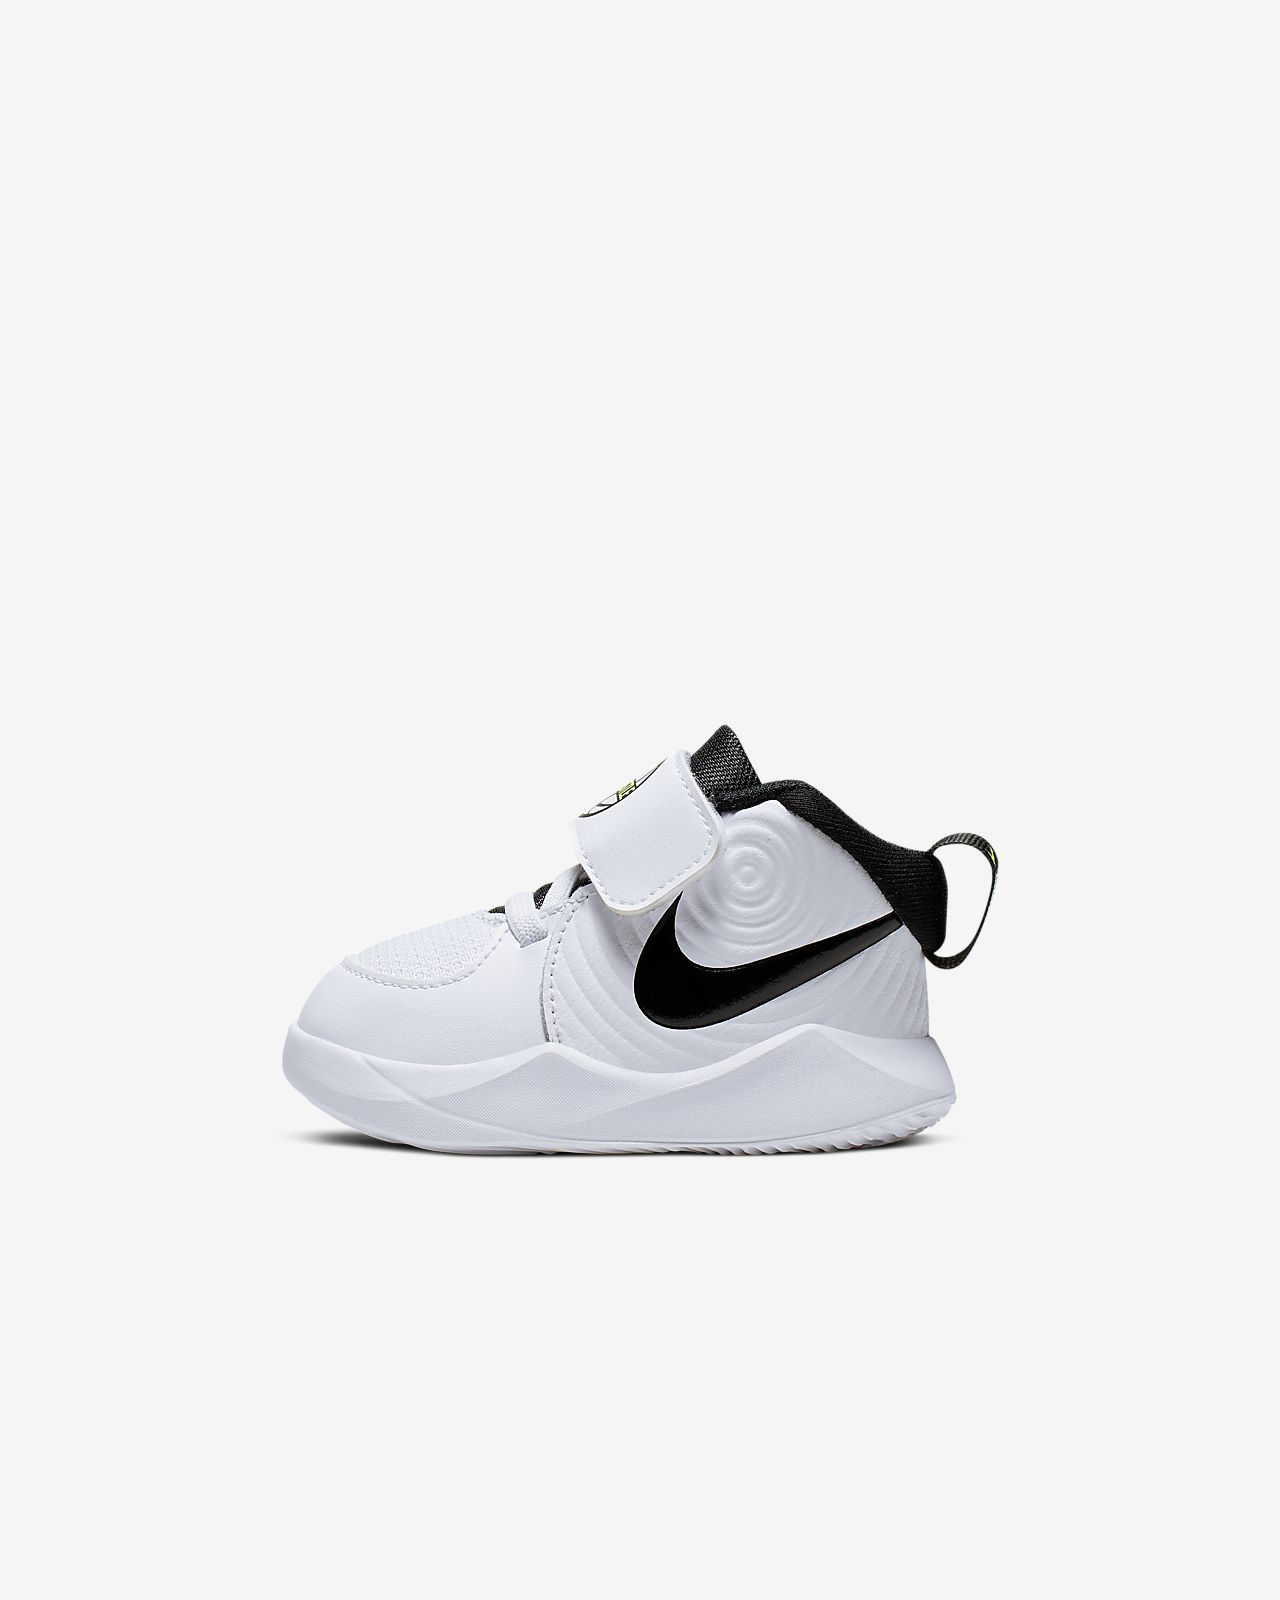 Nike Team Hustle D 9 Zapatillas - Bebé e infantil